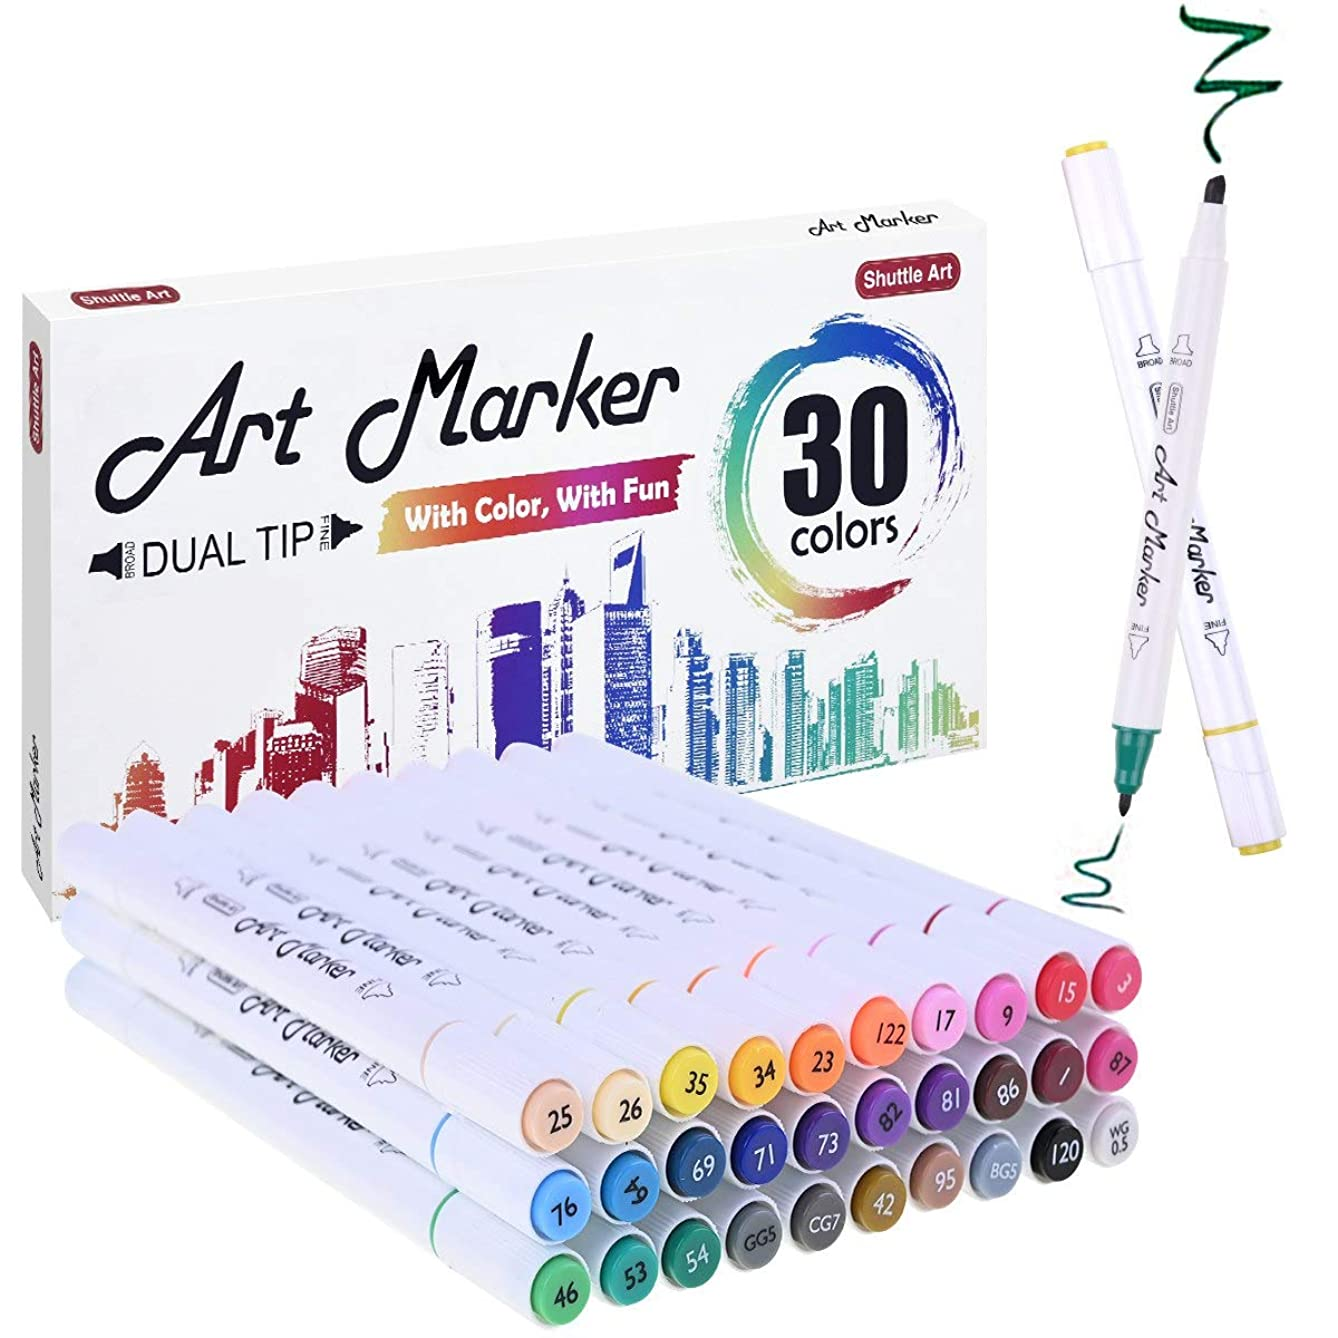 30 Colors Dual Tip Alcohol Based Art Markers,Shuttle Art Alcohol Marker Pens with Case Perfect for Kids Adult Coloring Books Sketching and Card Making